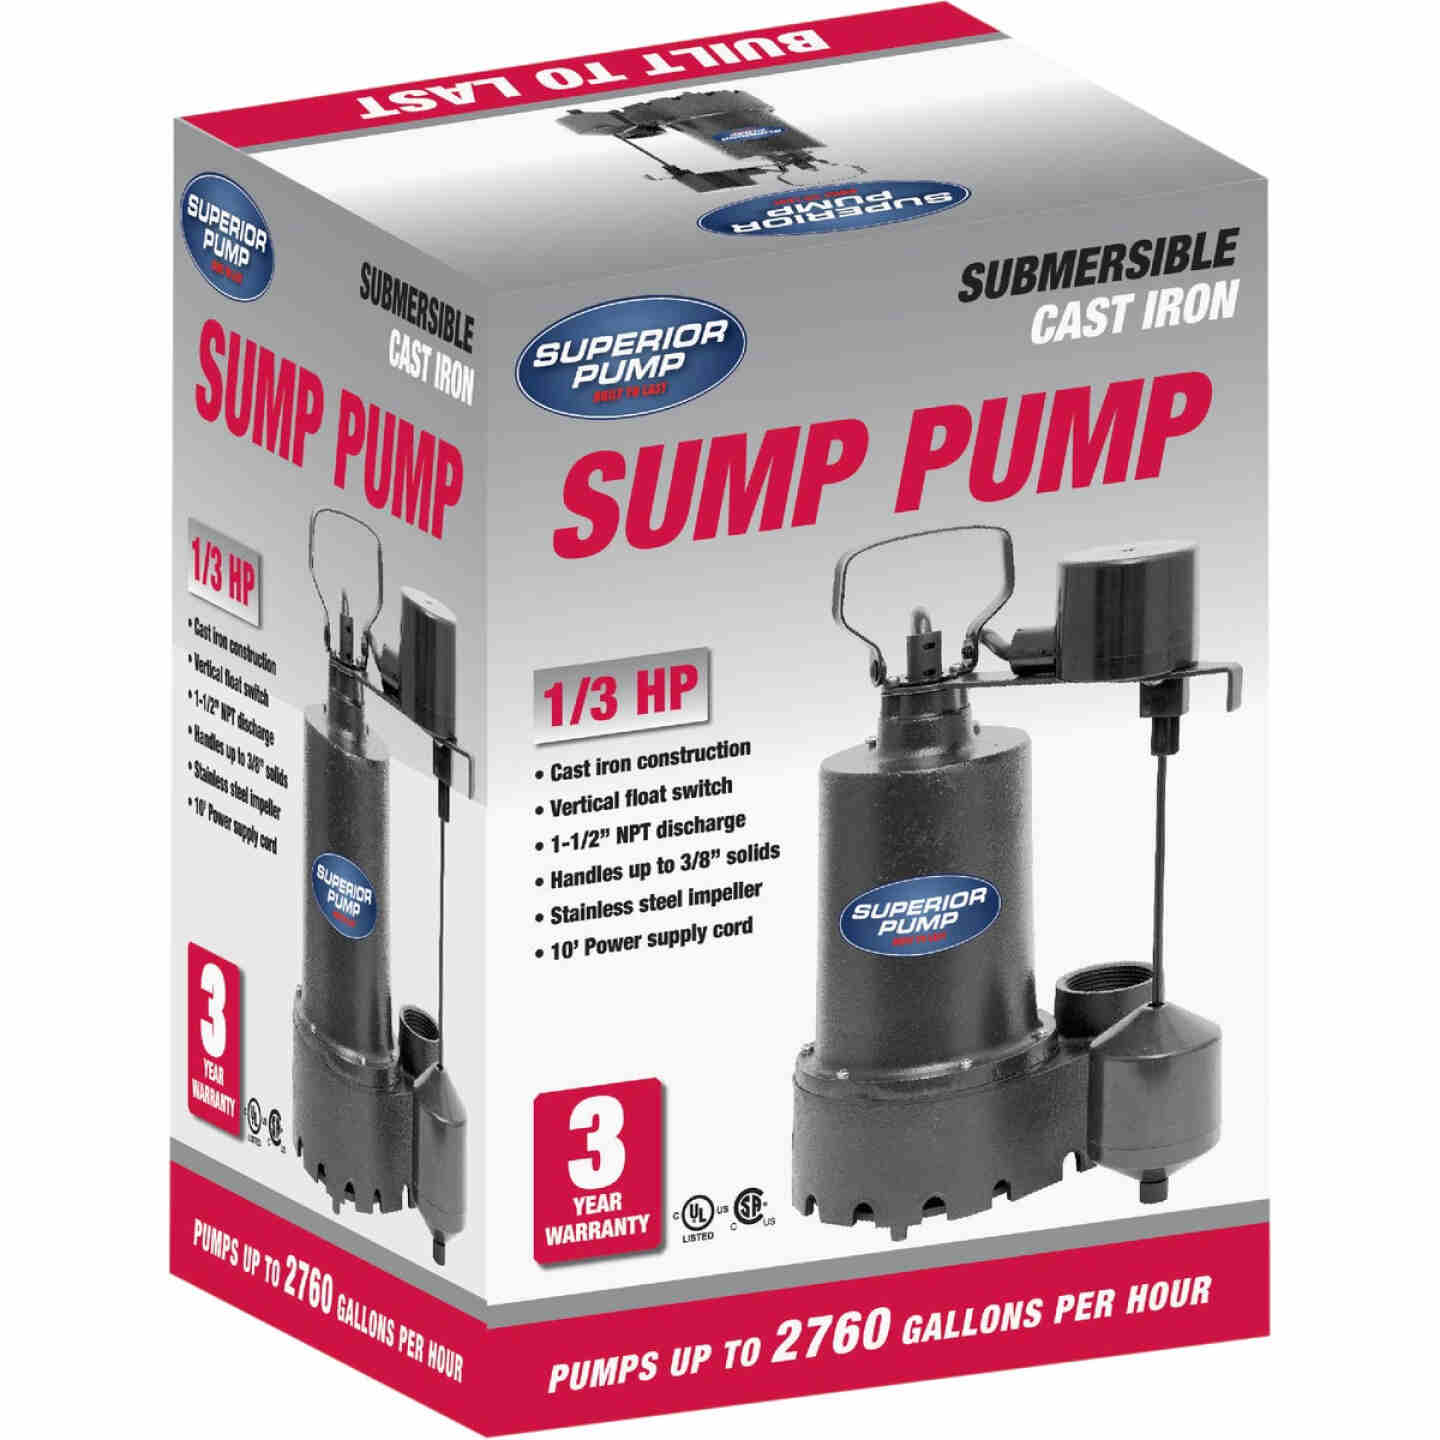 Superior Pump 1/3 HP Cast Iron Submersible Sump Pump with Vertical Float Switch & Stainless Steel Impeller Image 3